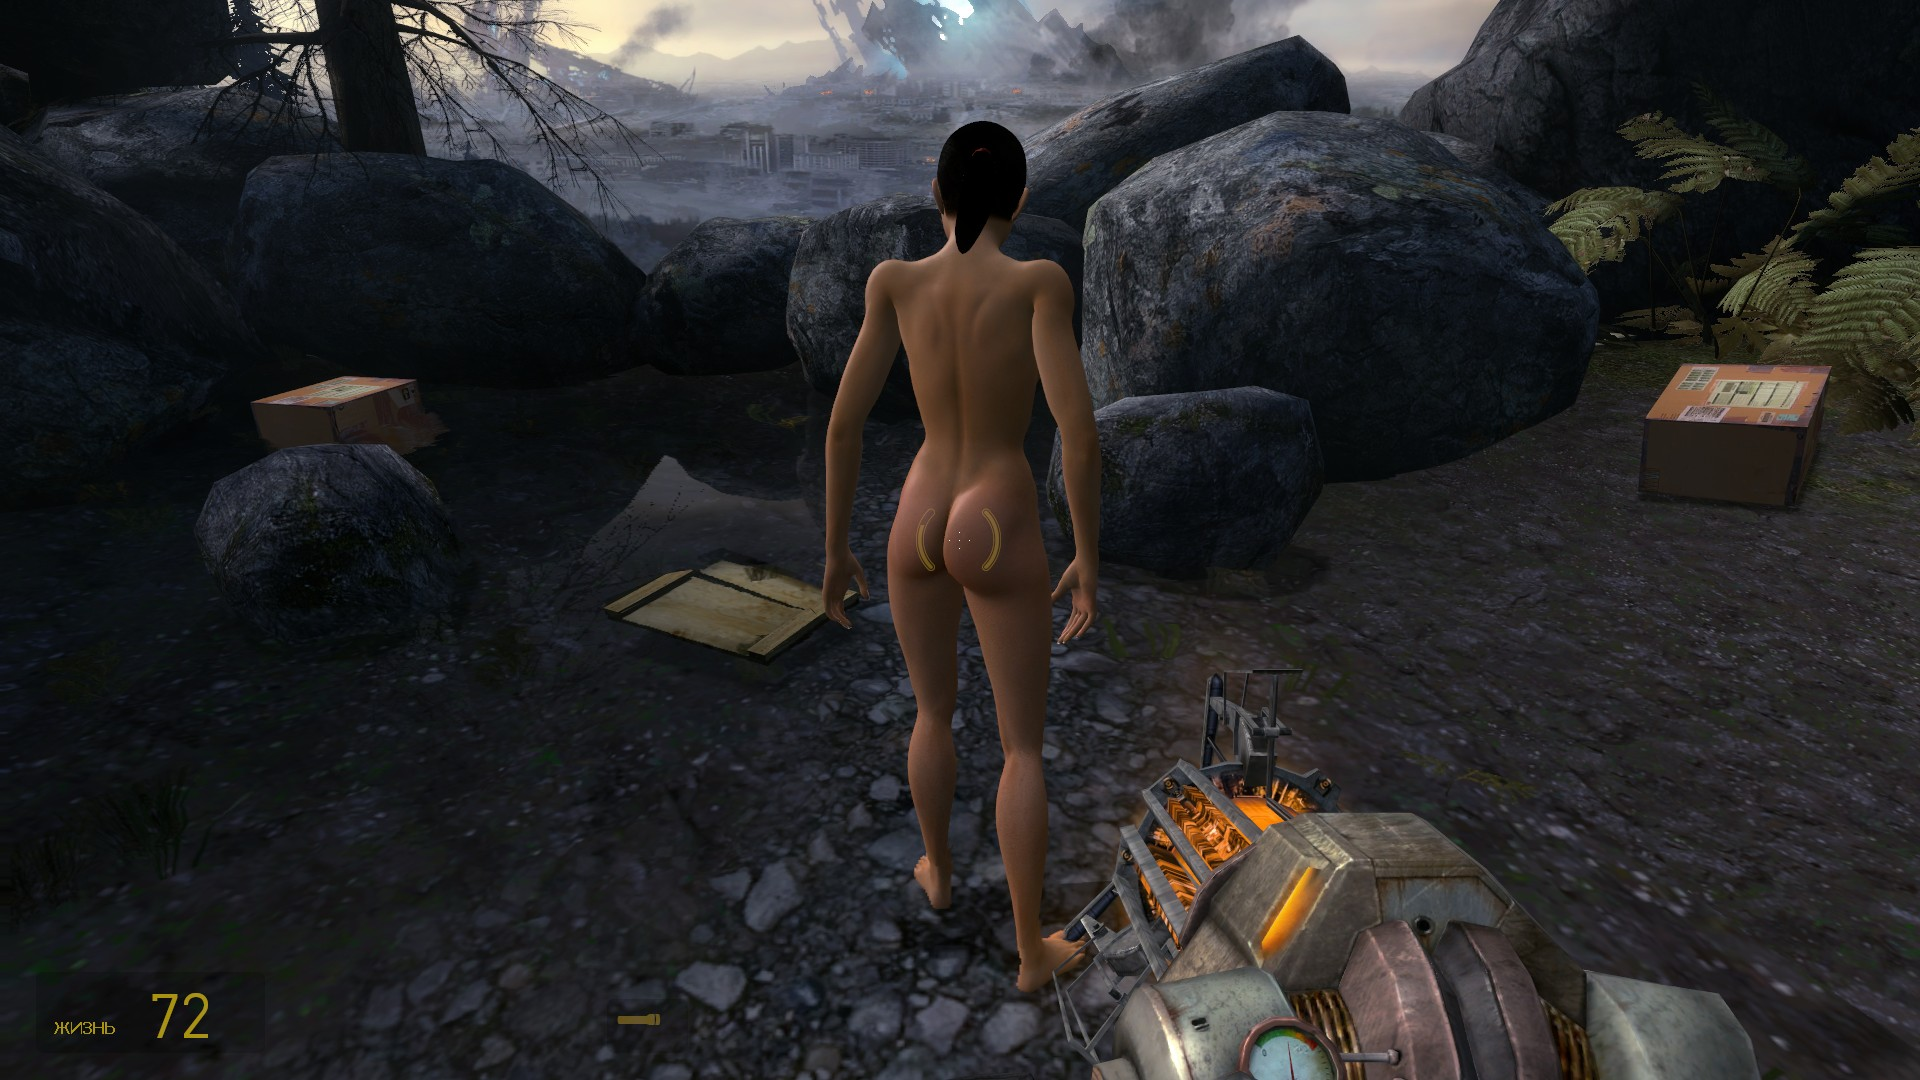 Nude patch ps3 games fucking photo